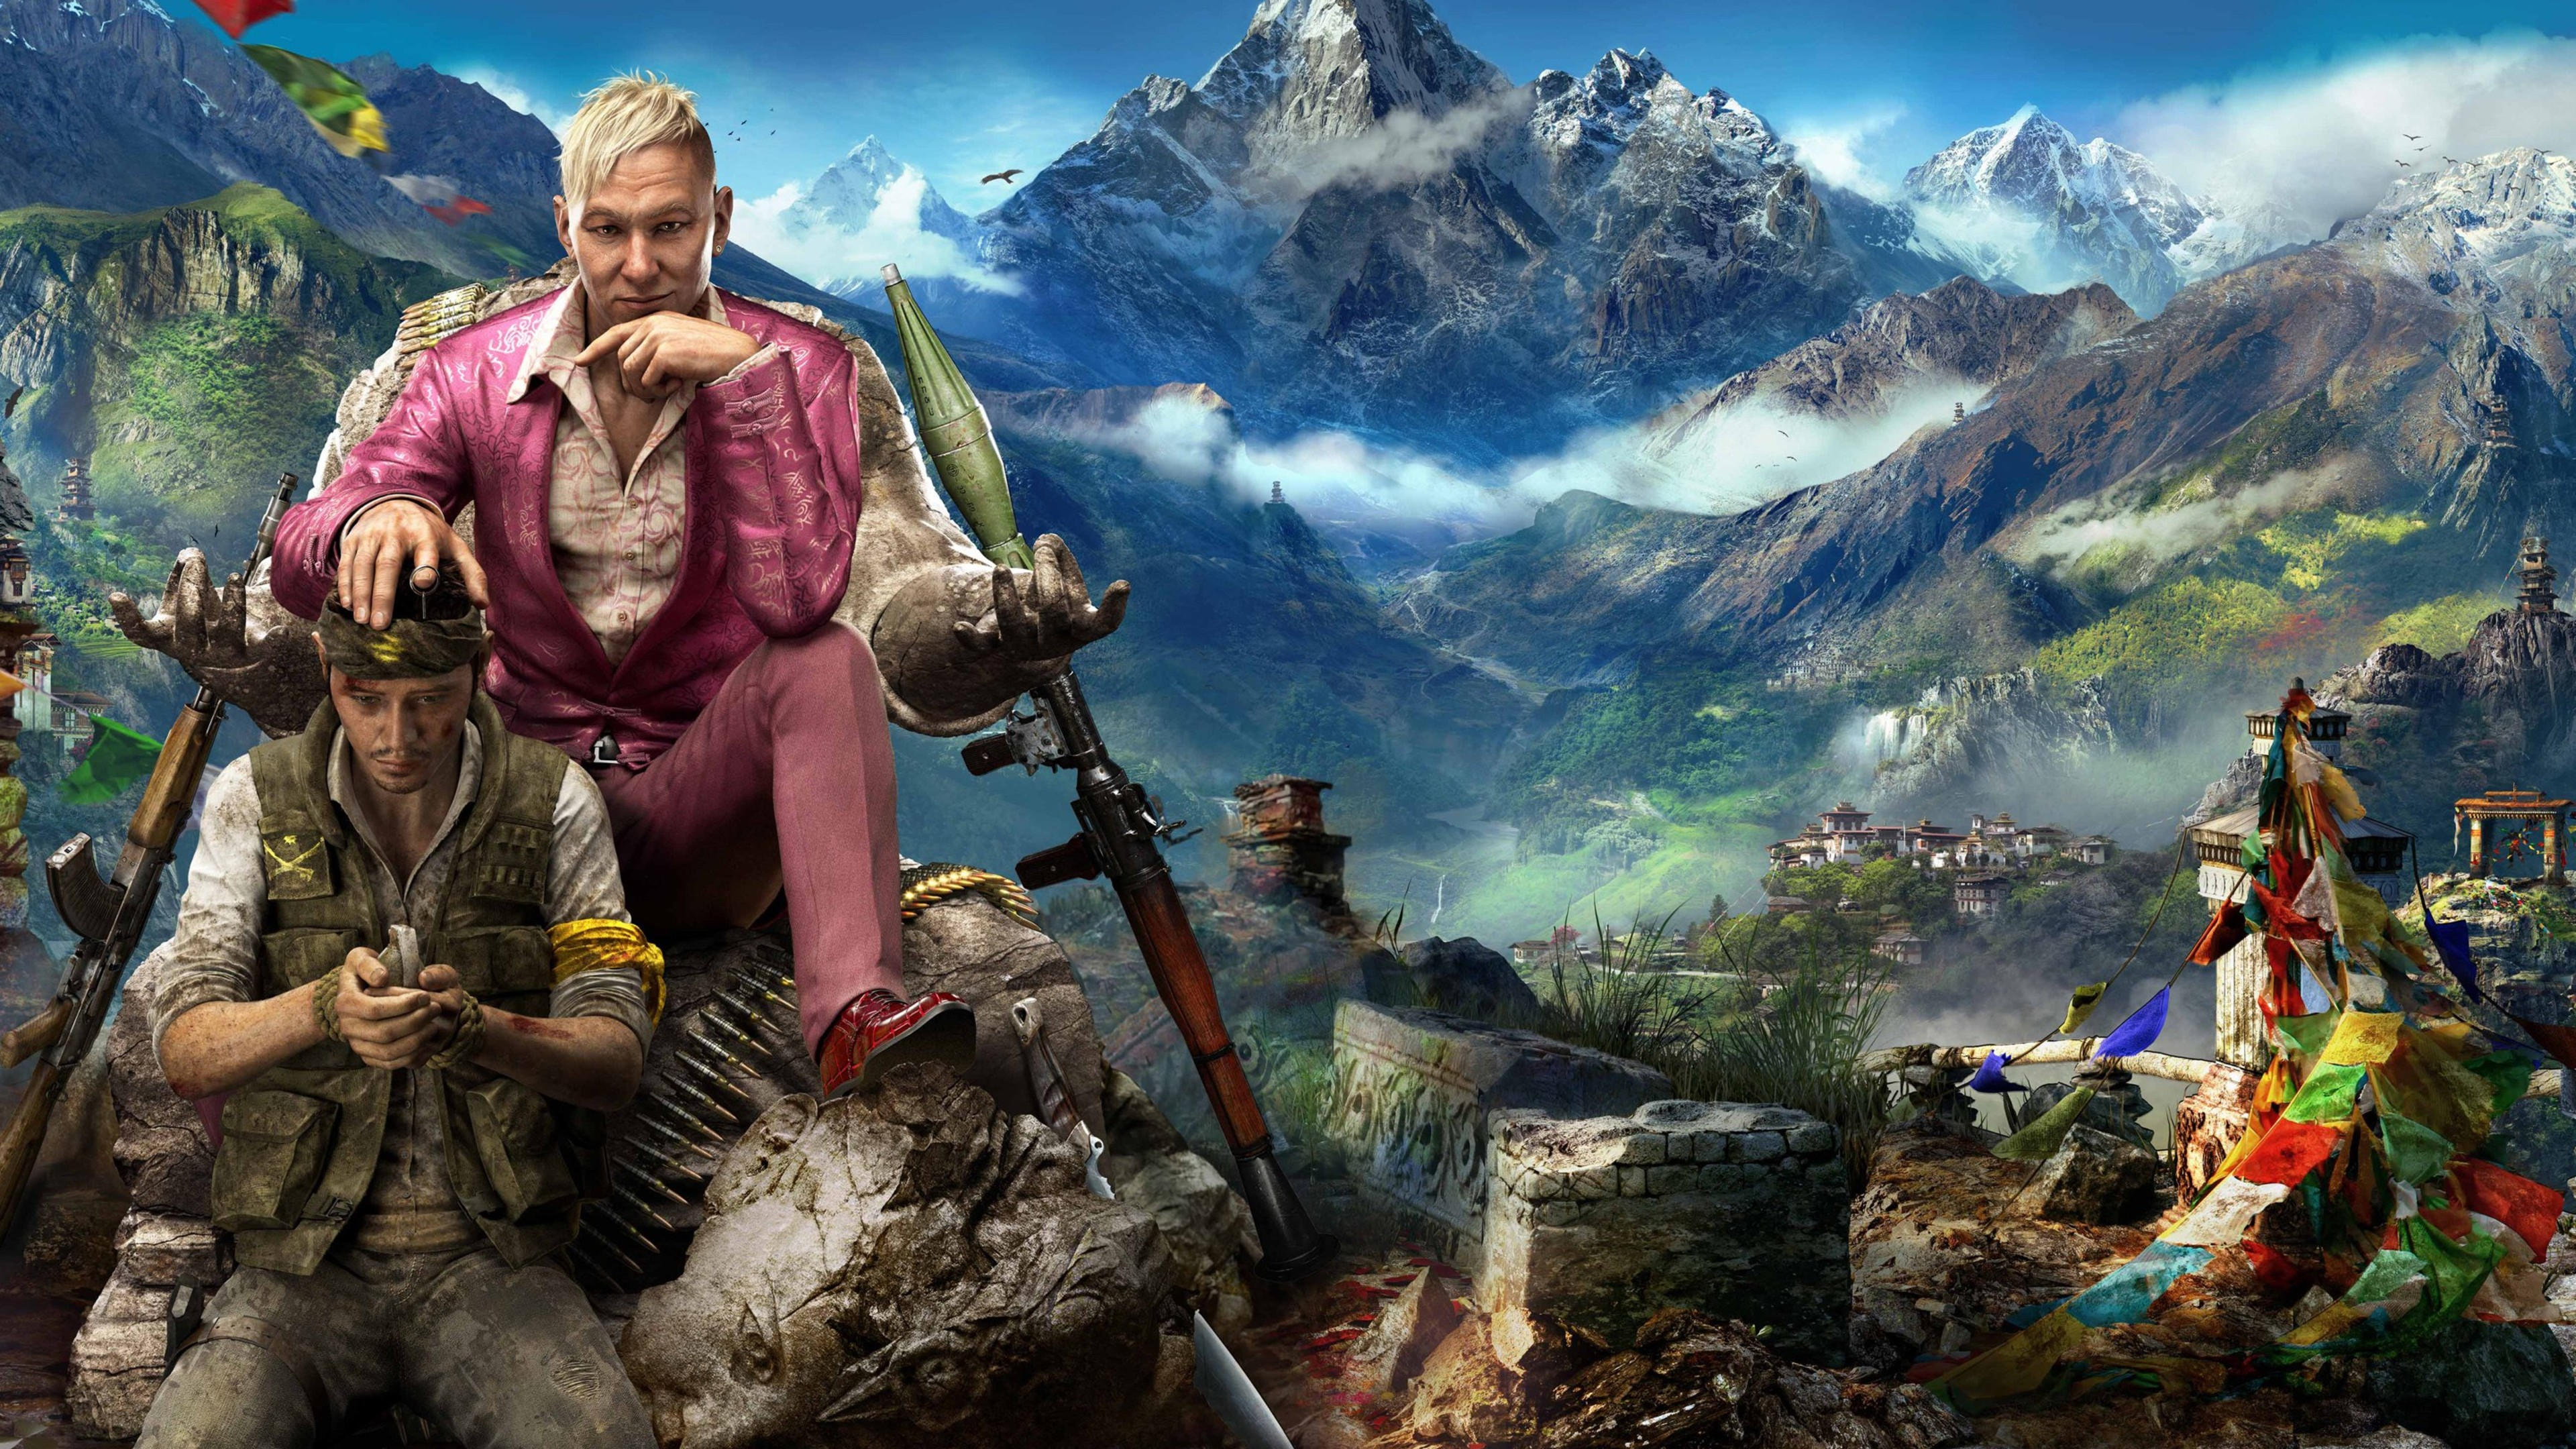 Far Cry 4 Wallpapers Hd Desktop And Mobile Backgrounds: Far Cry 4 Latest, HD Games, 4k Wallpapers, Images